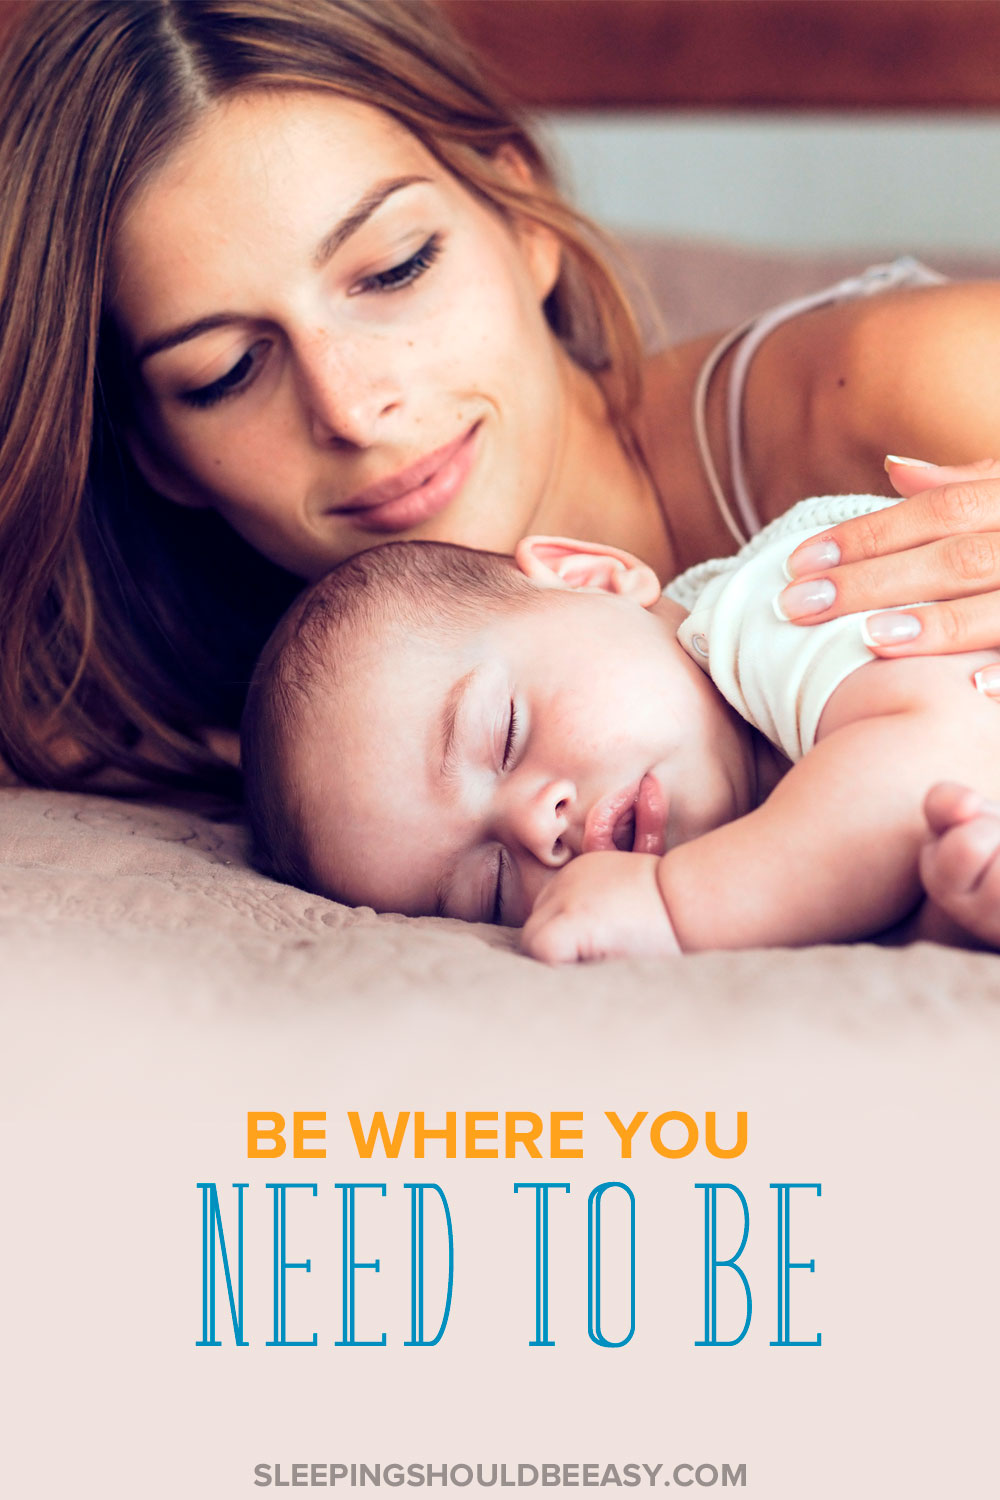 Feeling frustrated with parenthood? Accept your current moment as the most important and be where you need to be. This mindset will change your outlook.